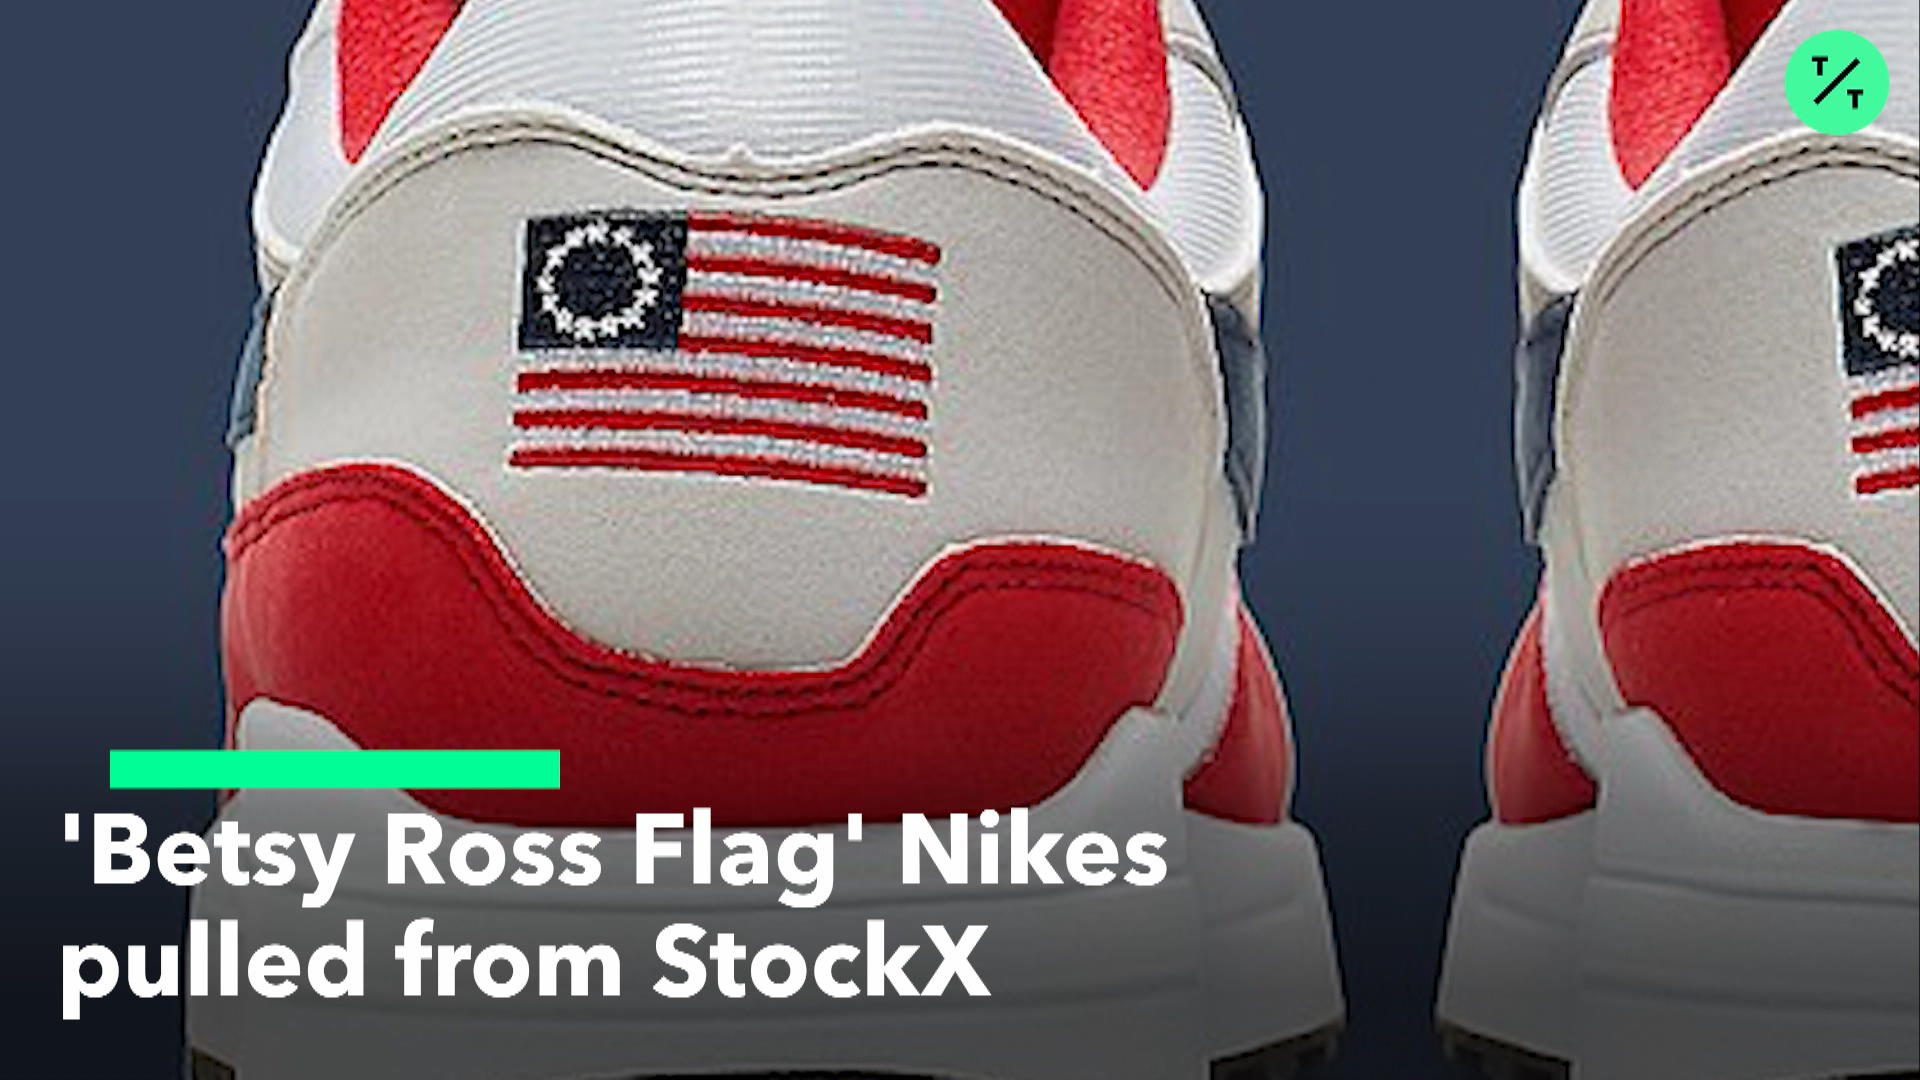 9cecafb5 StockX Removes 'Betsy Ross Flag' Nikes – Bloomberg